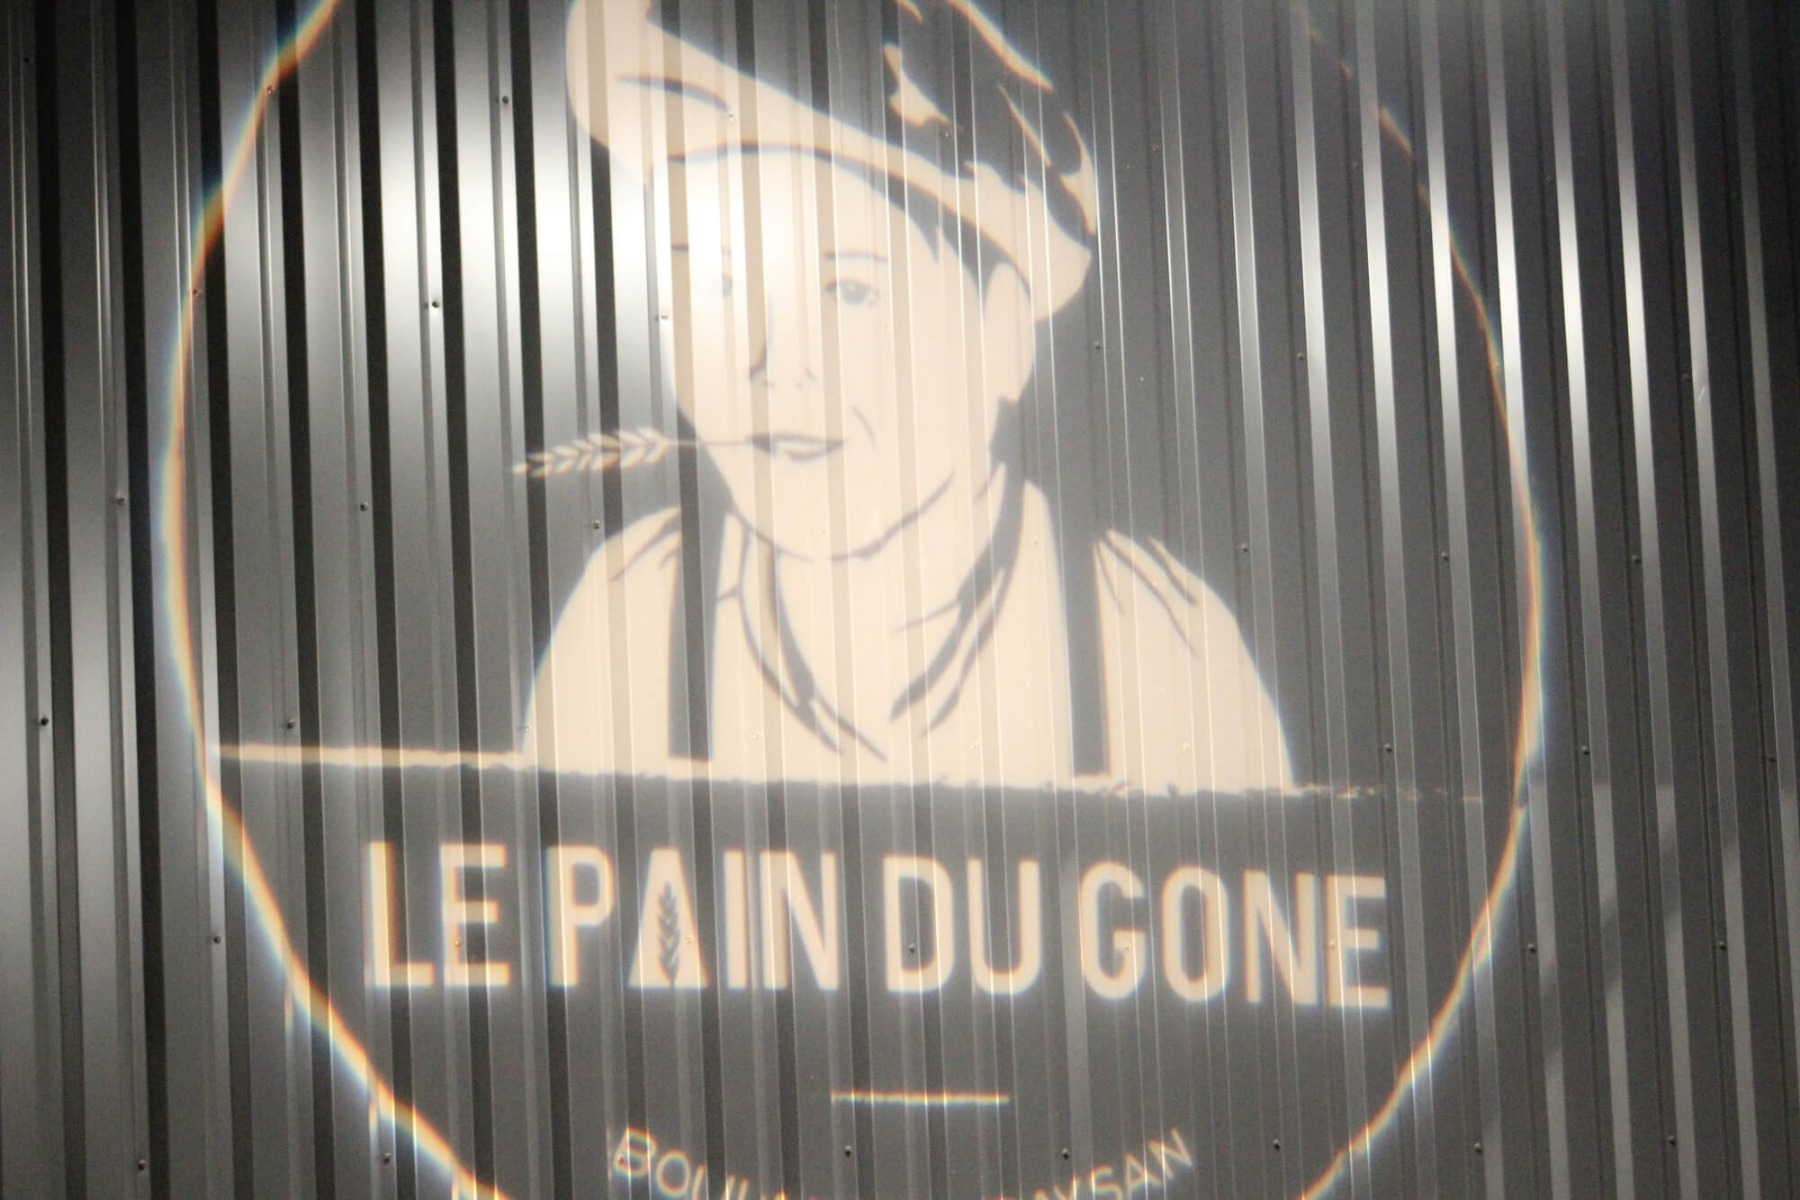 Projection logo Le Pain du Gone sur mur